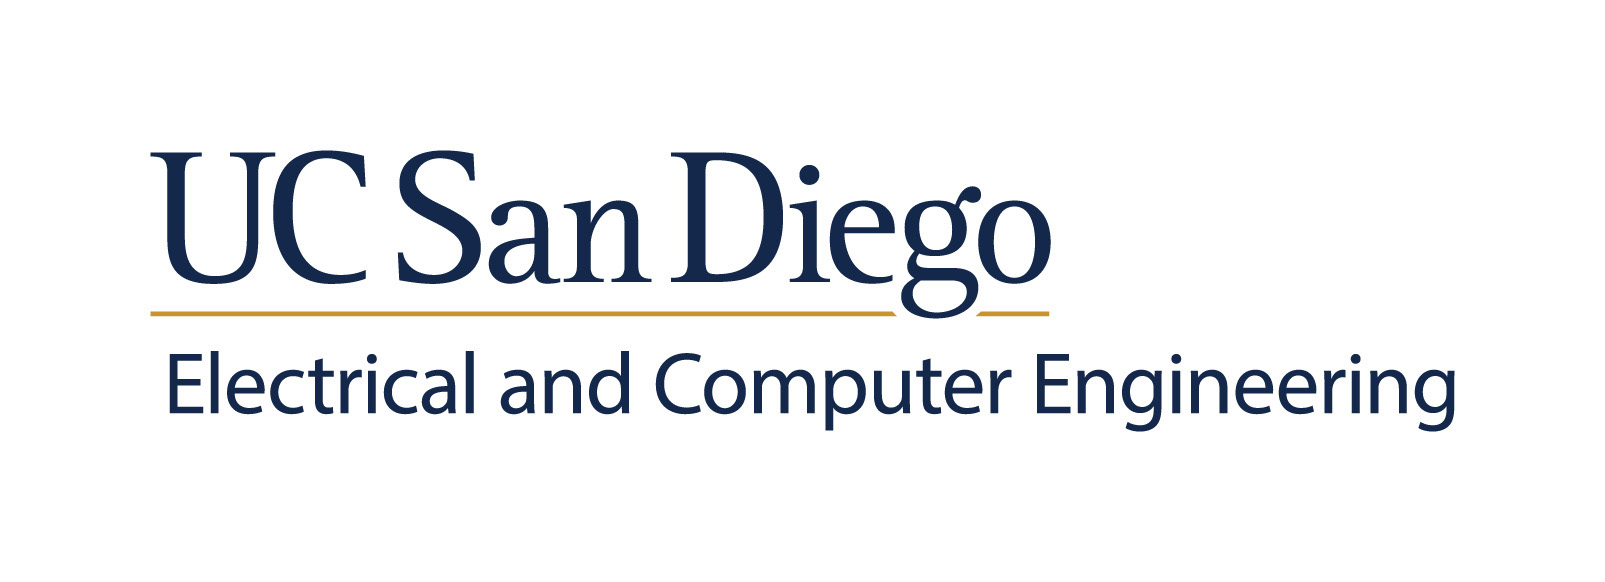 UC San Diego, Electrical and Computer Engineering